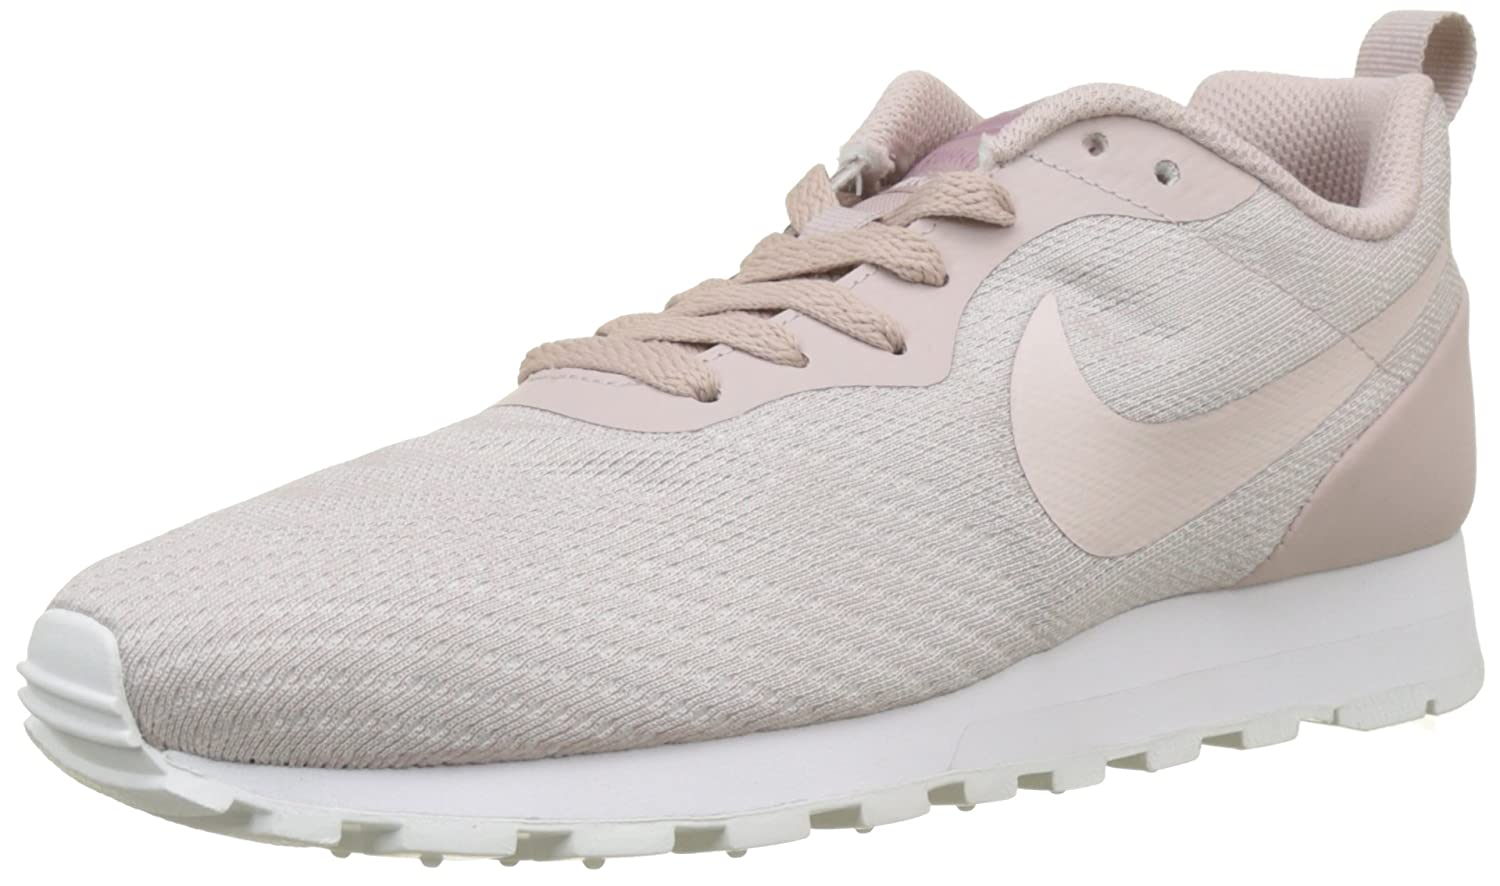 Rose (Particle Rose Barely Rose blanc 601) Nike WMNS MD Runner 2 Eng Mesh, Chaussures de Gymnastique Femme 37.5 EU